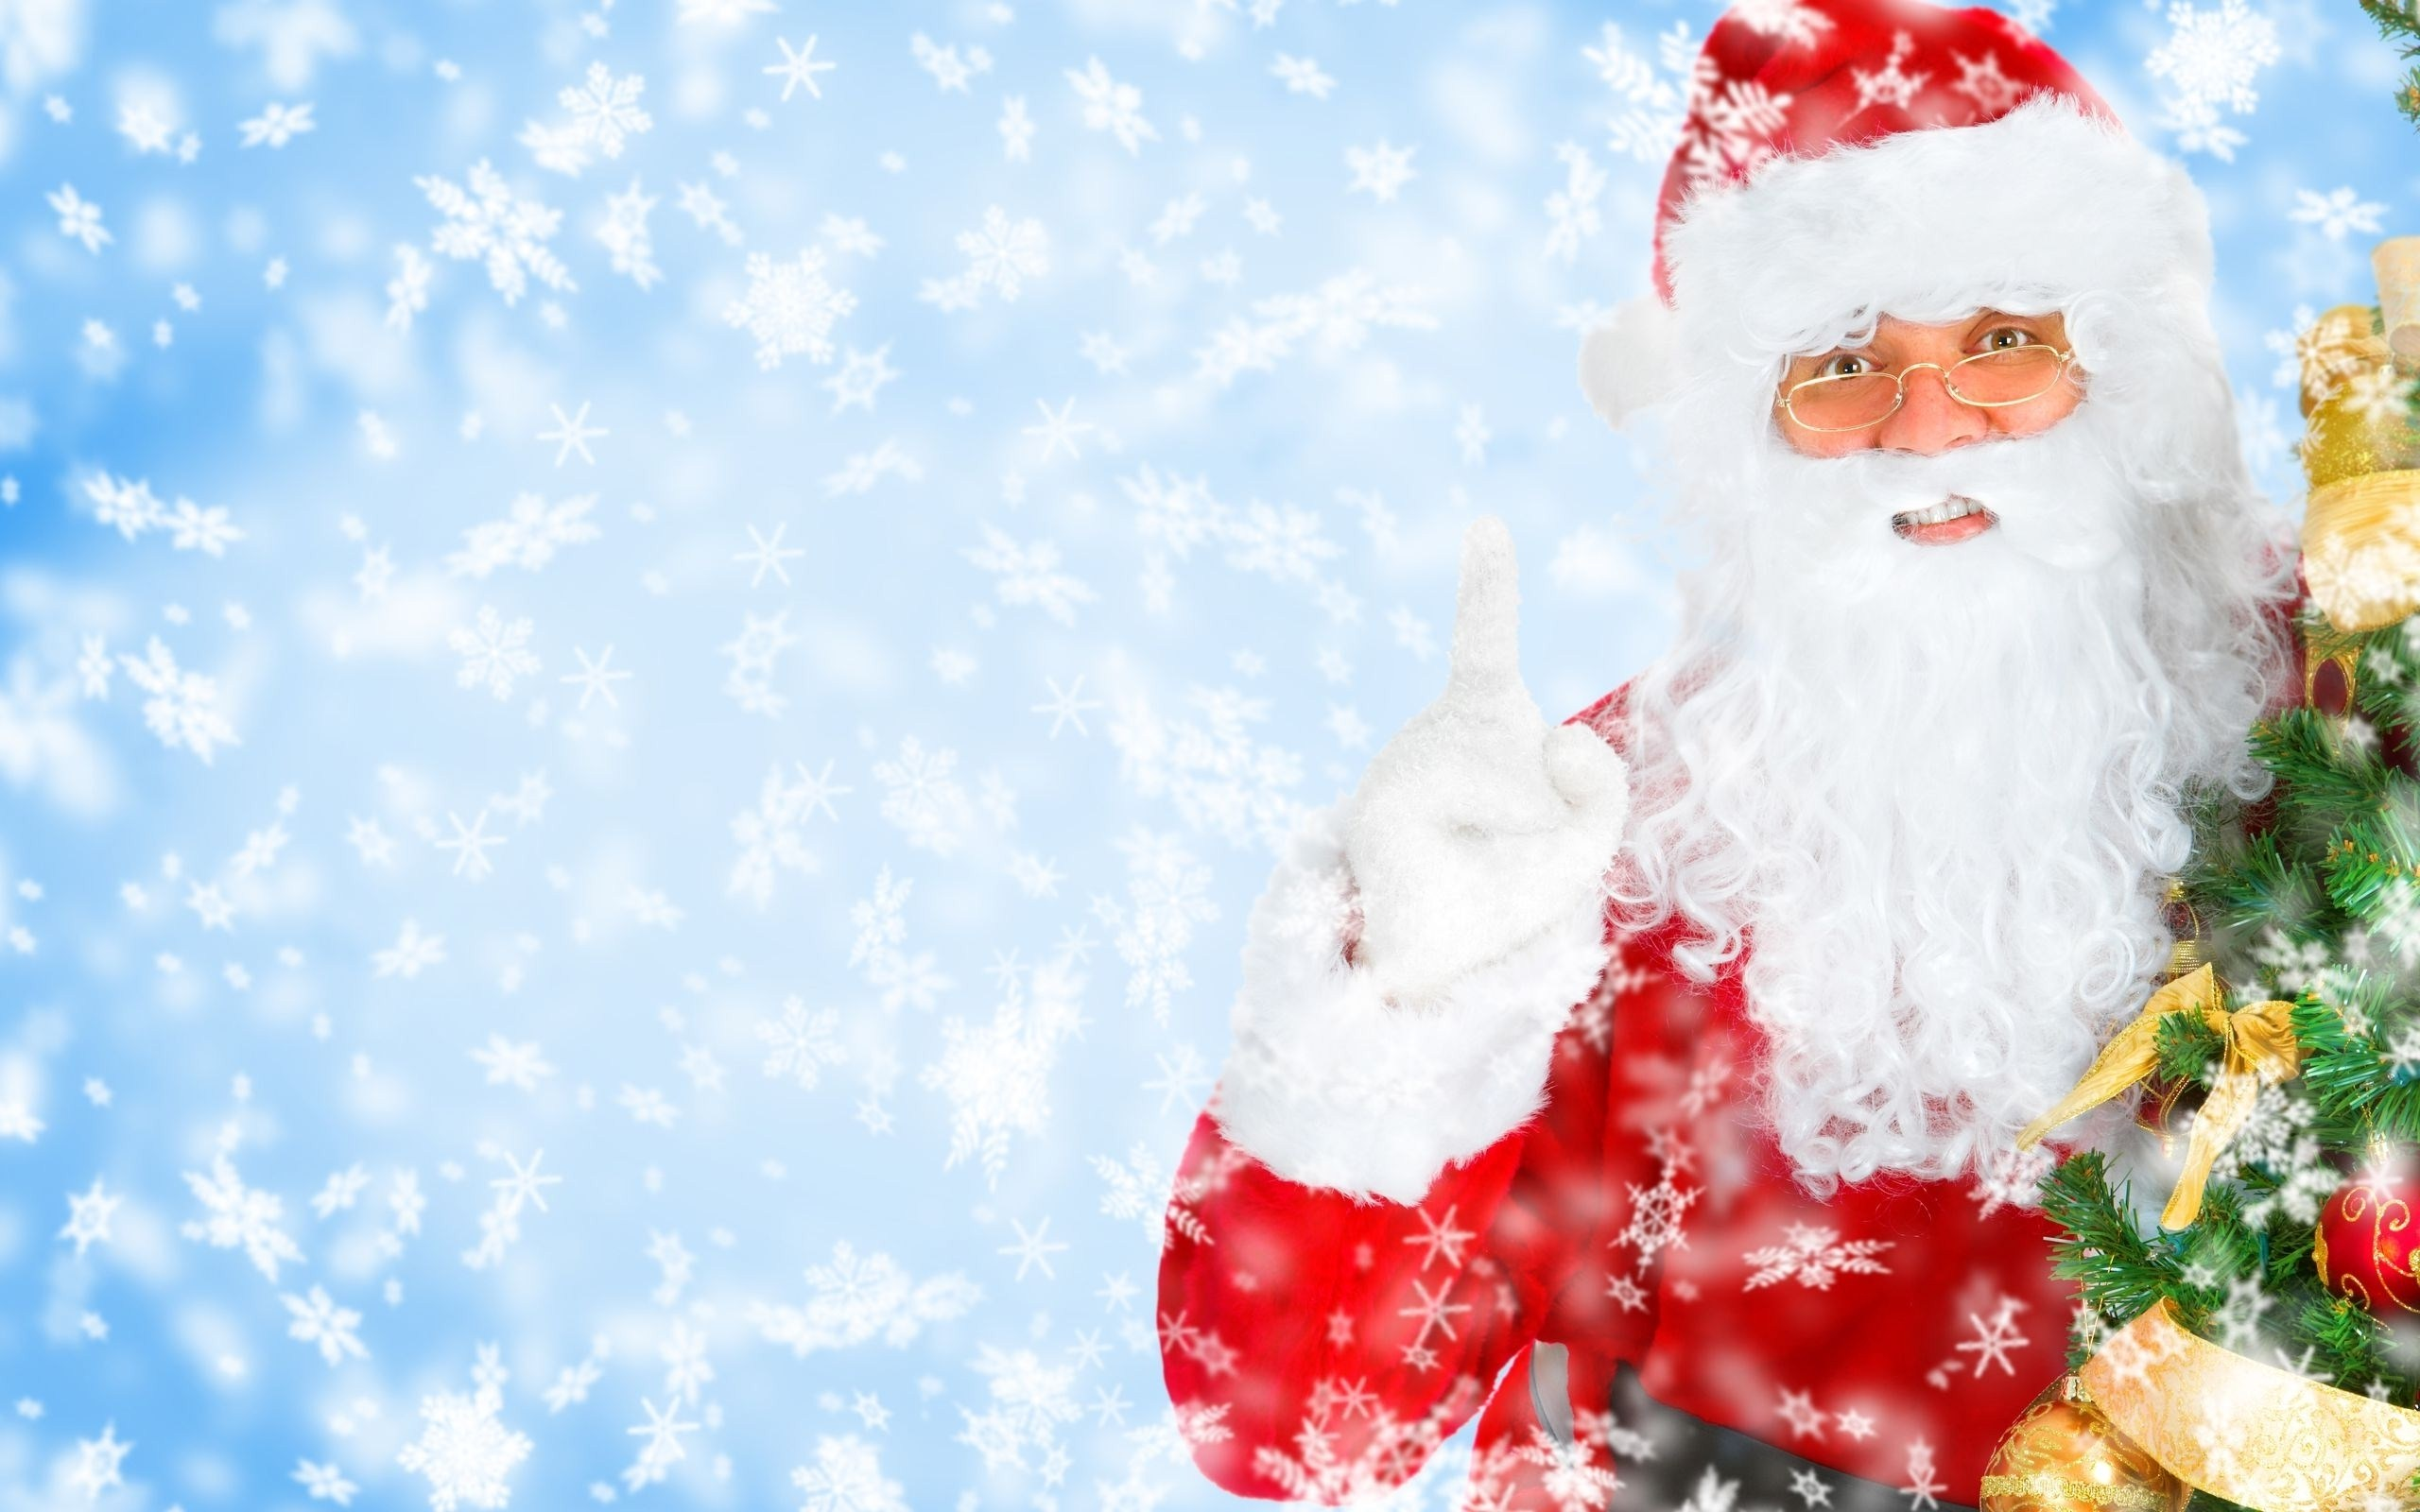 Santa Claus Christmas Wallpaper Laptop